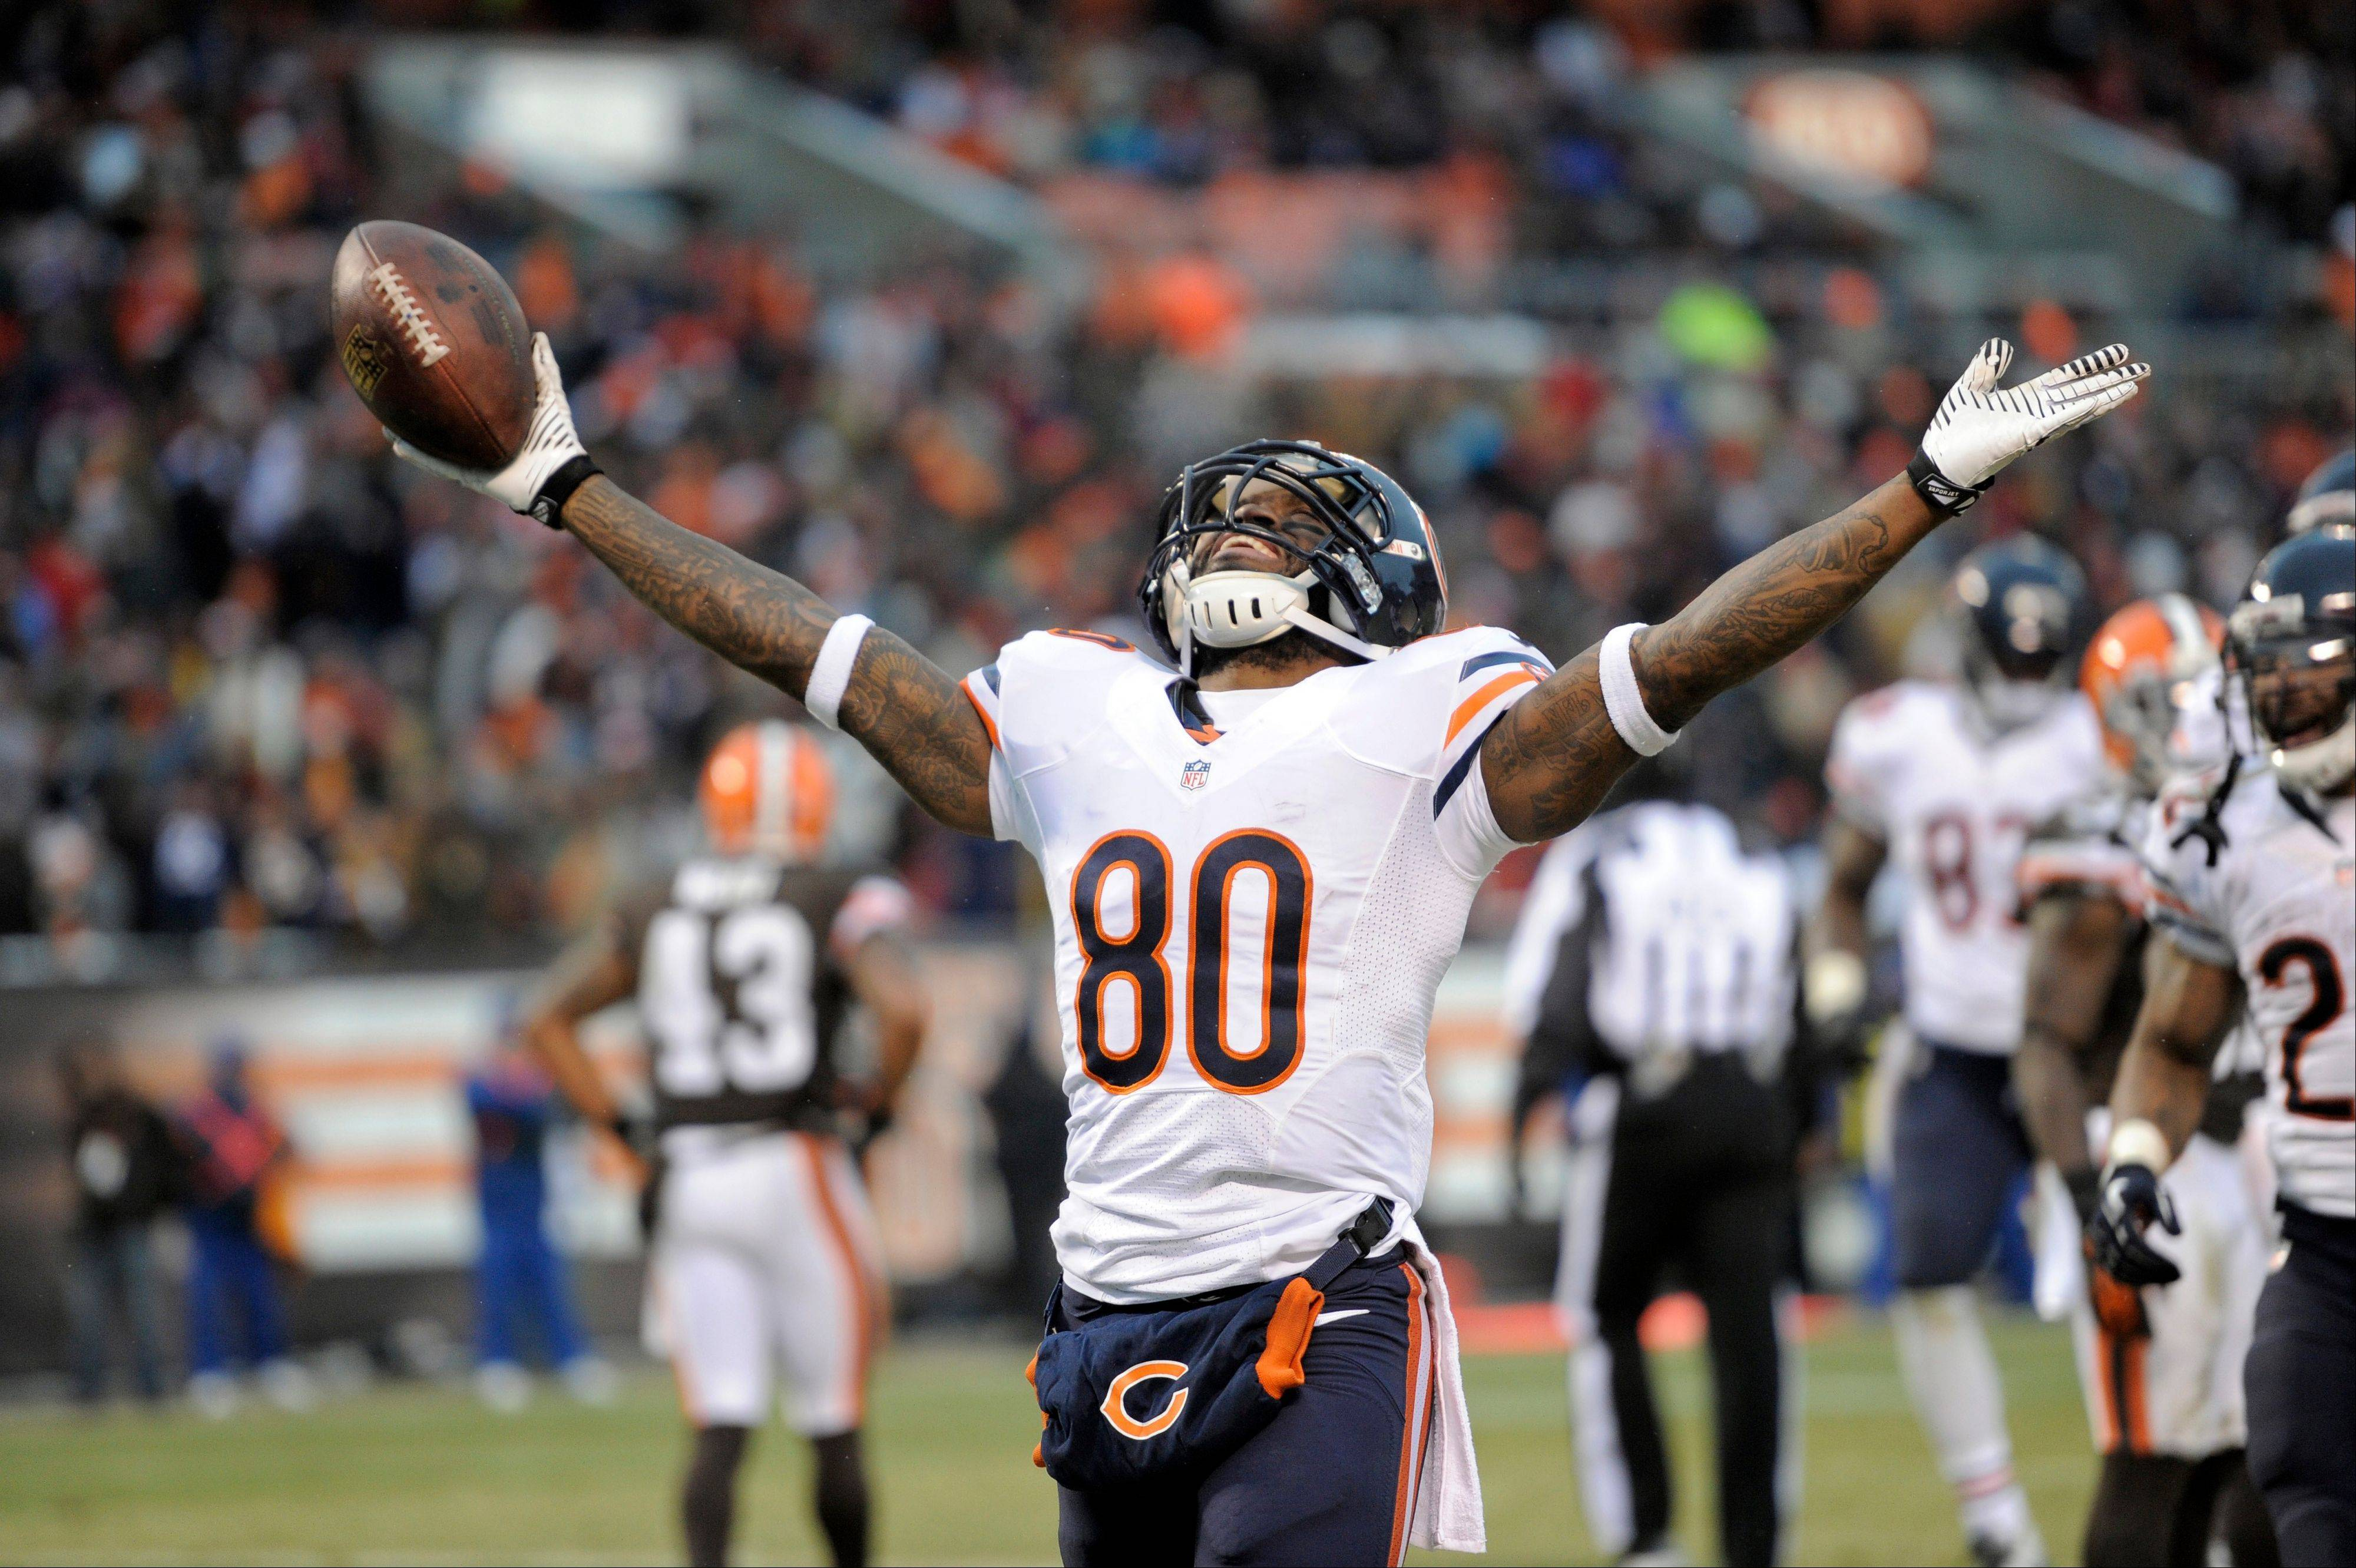 Chicago Bears wide receiver Earl Bennett celebrates after catching a four-yard touchdown pass against the Cleveland Browns in the fourth quarter of an NFL football game Sunday in Cleveland.